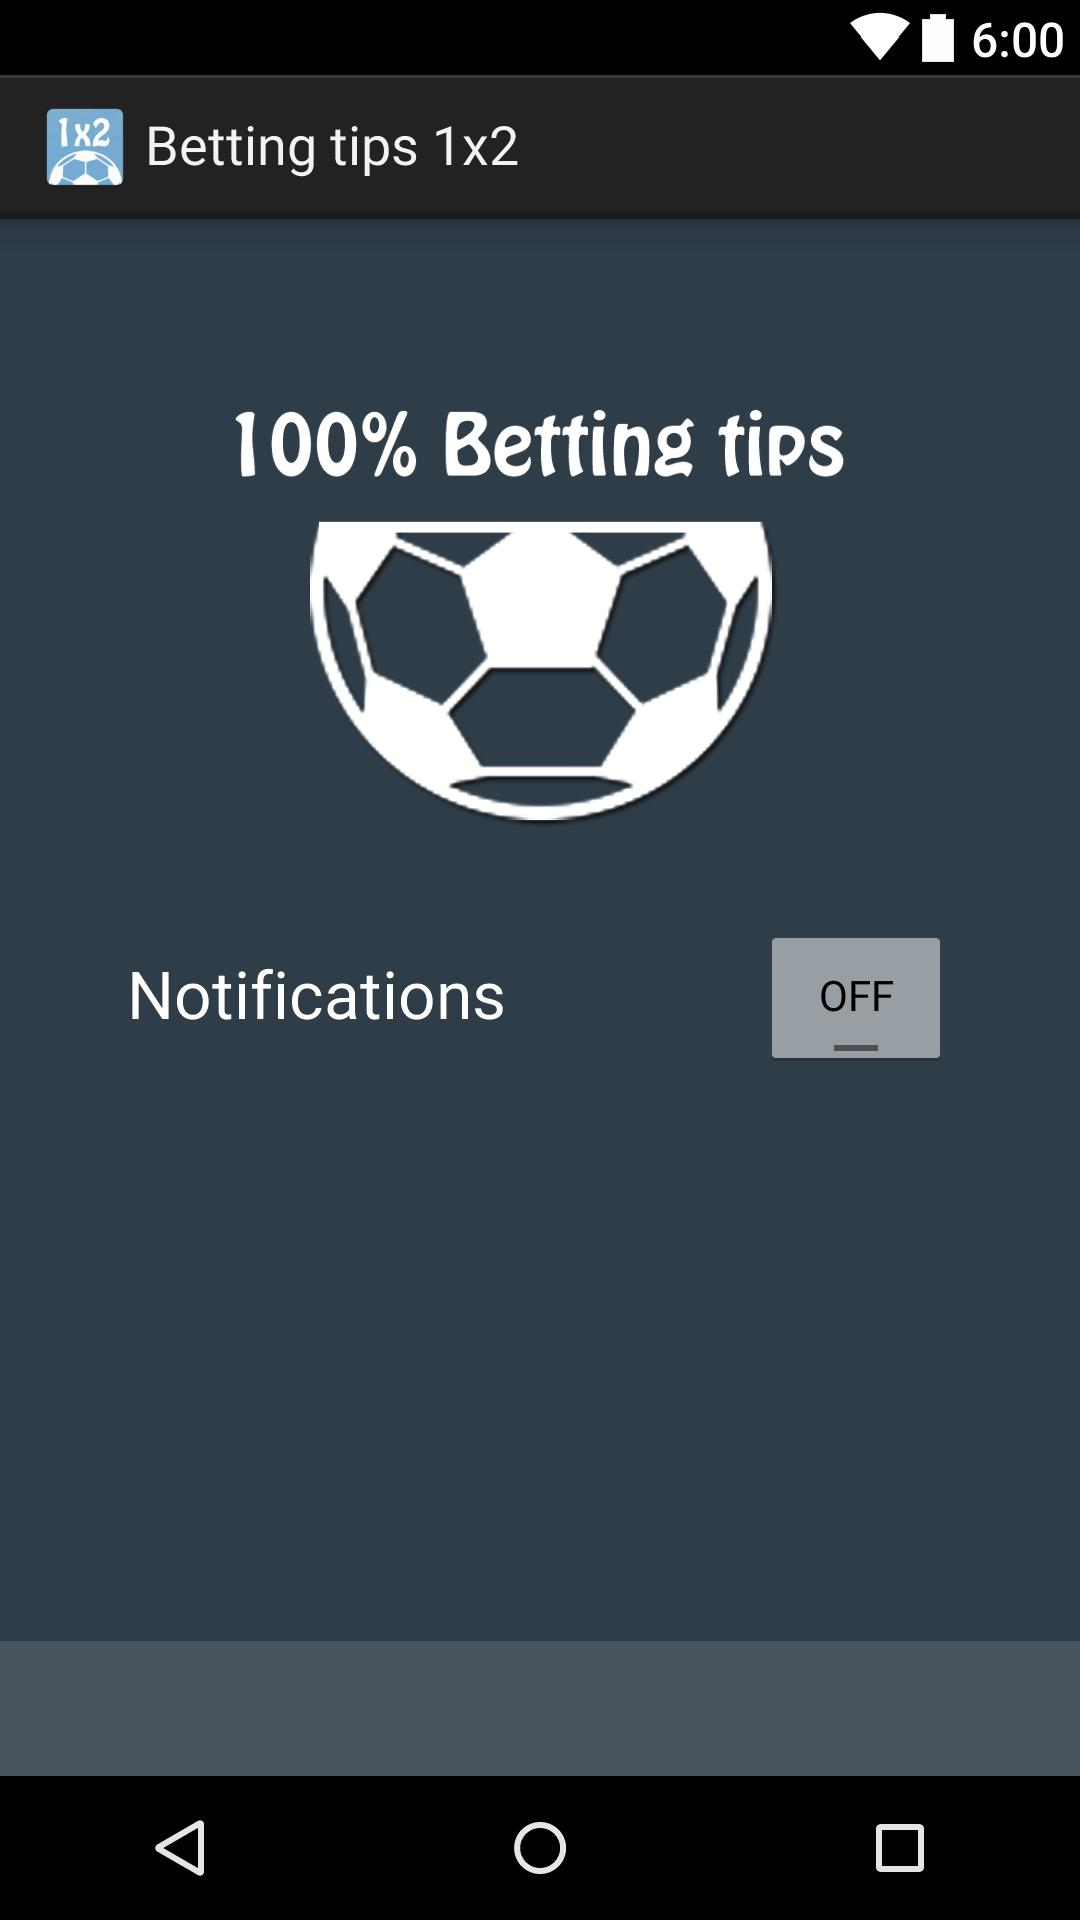 Fix tips 1x2 betting cookie monster plugin 1-3 2-4 betting system